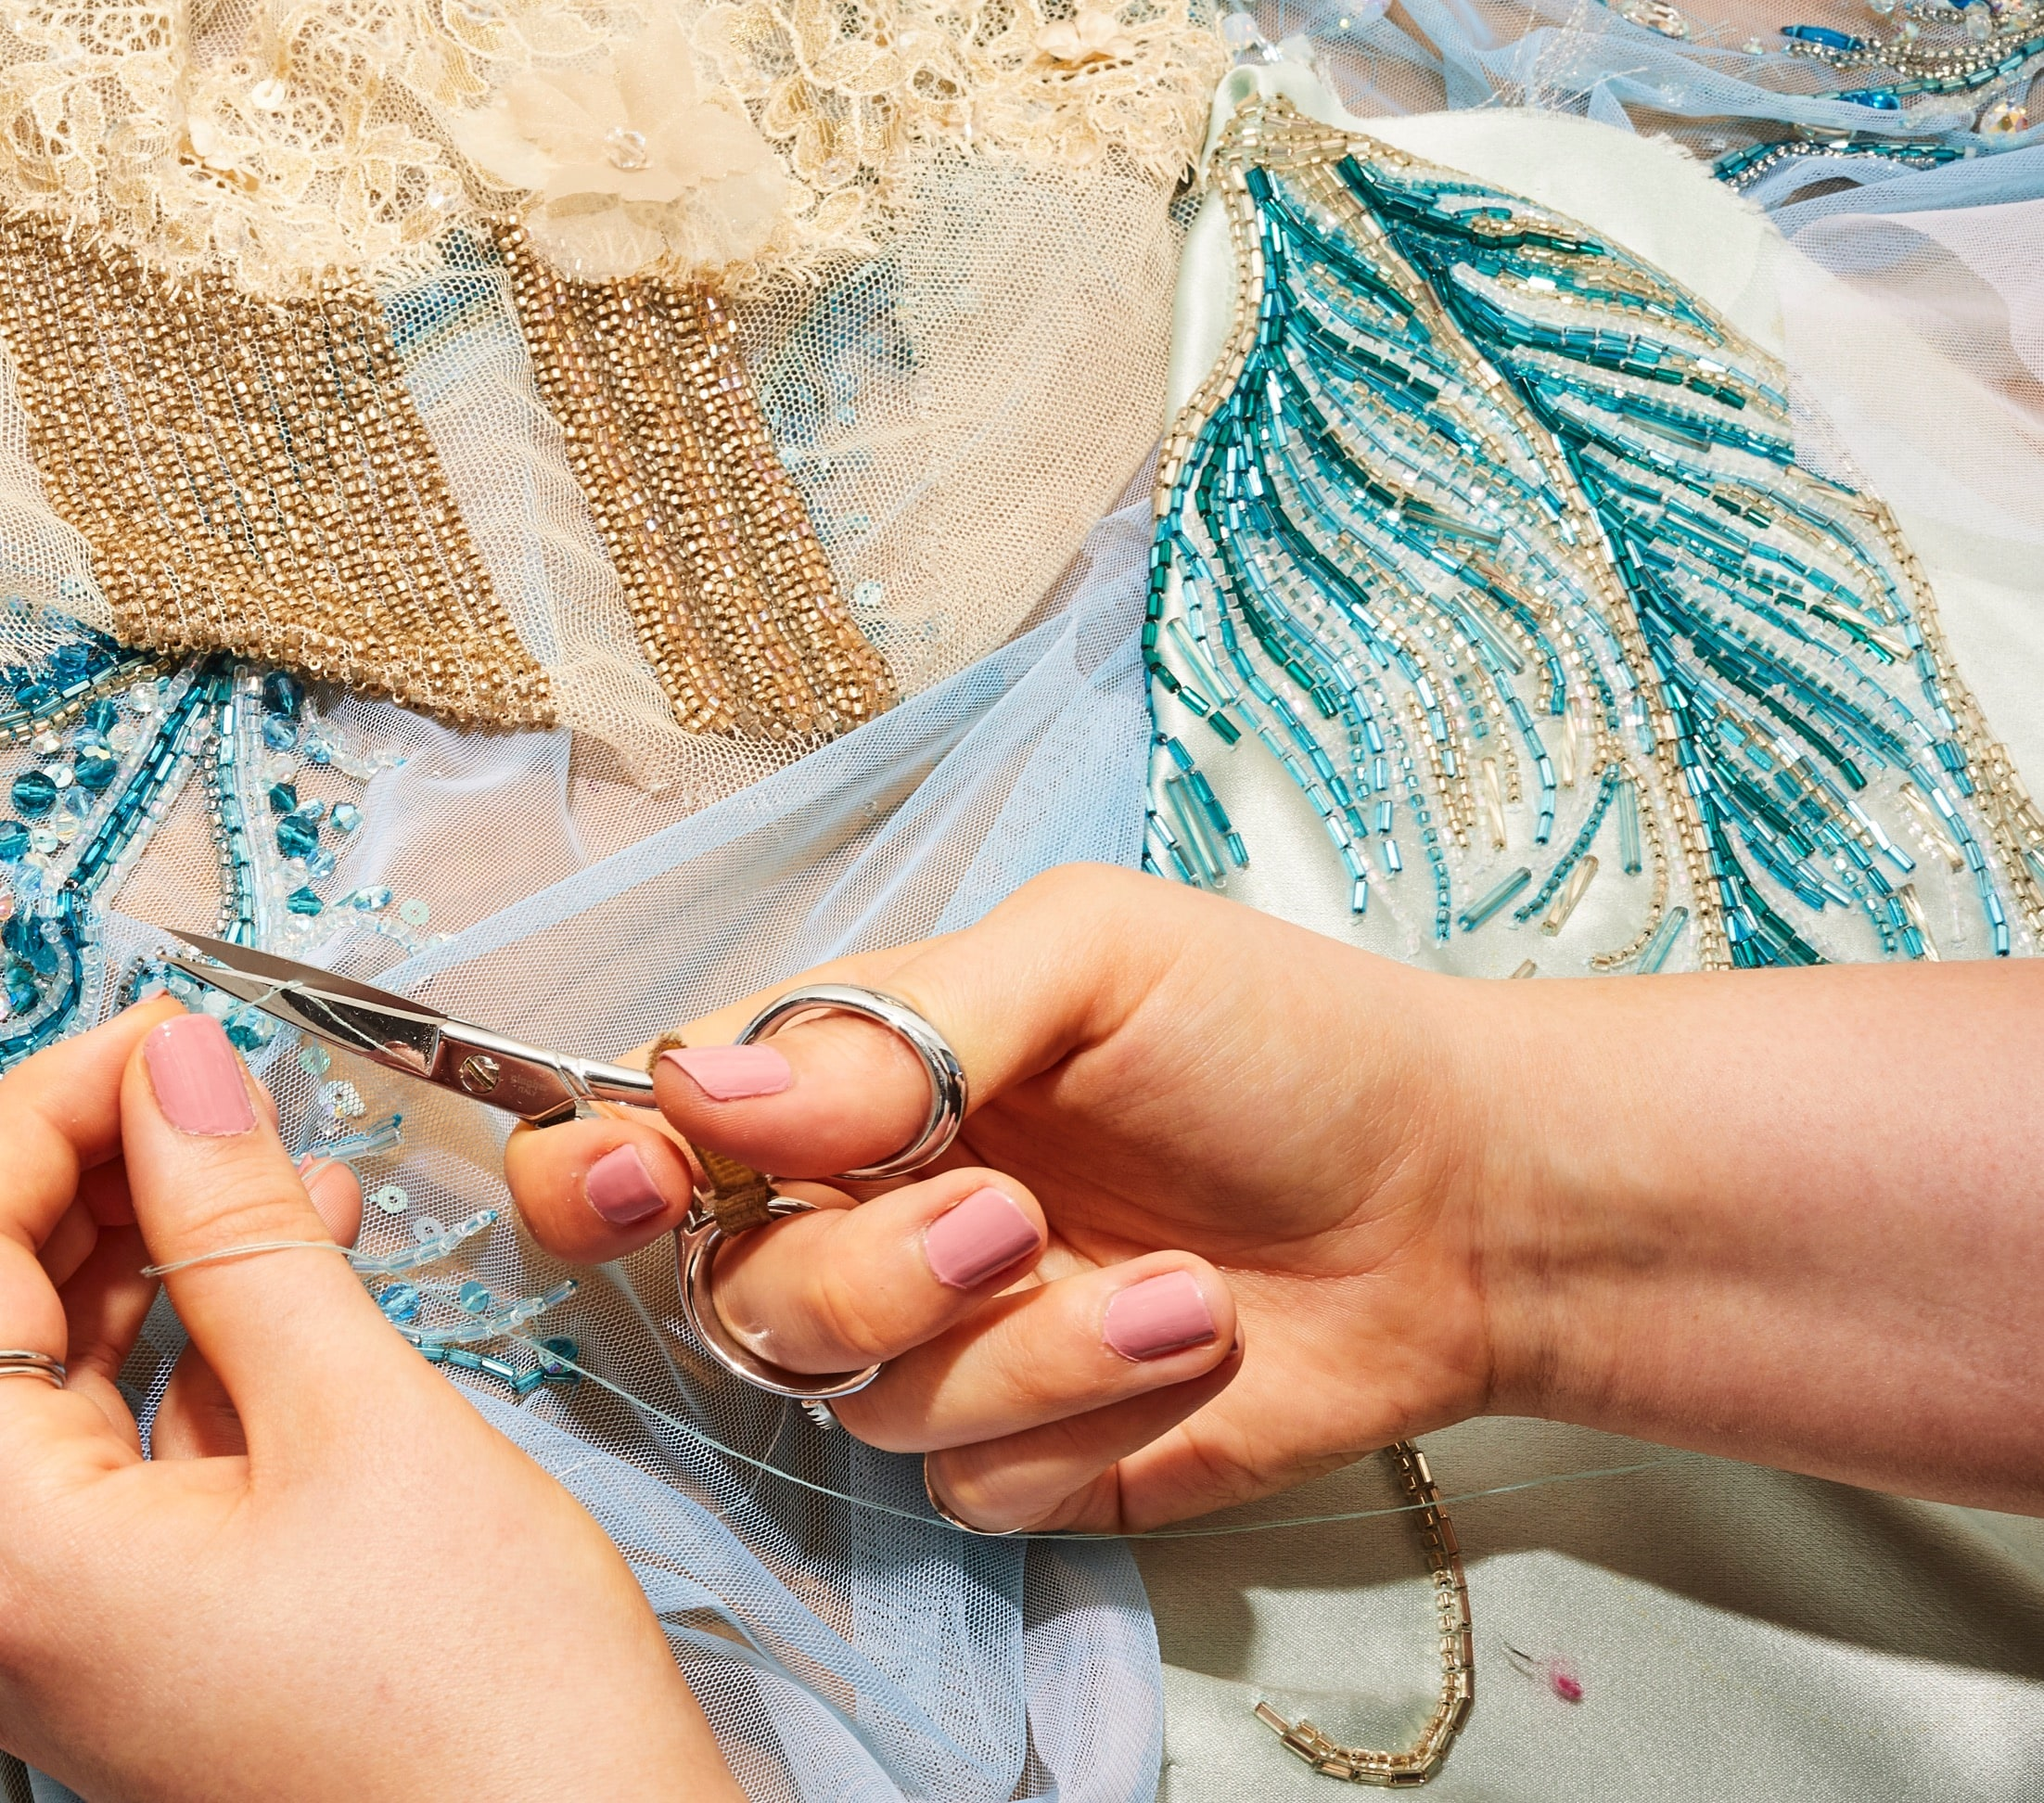 Hands with blue and white fabric